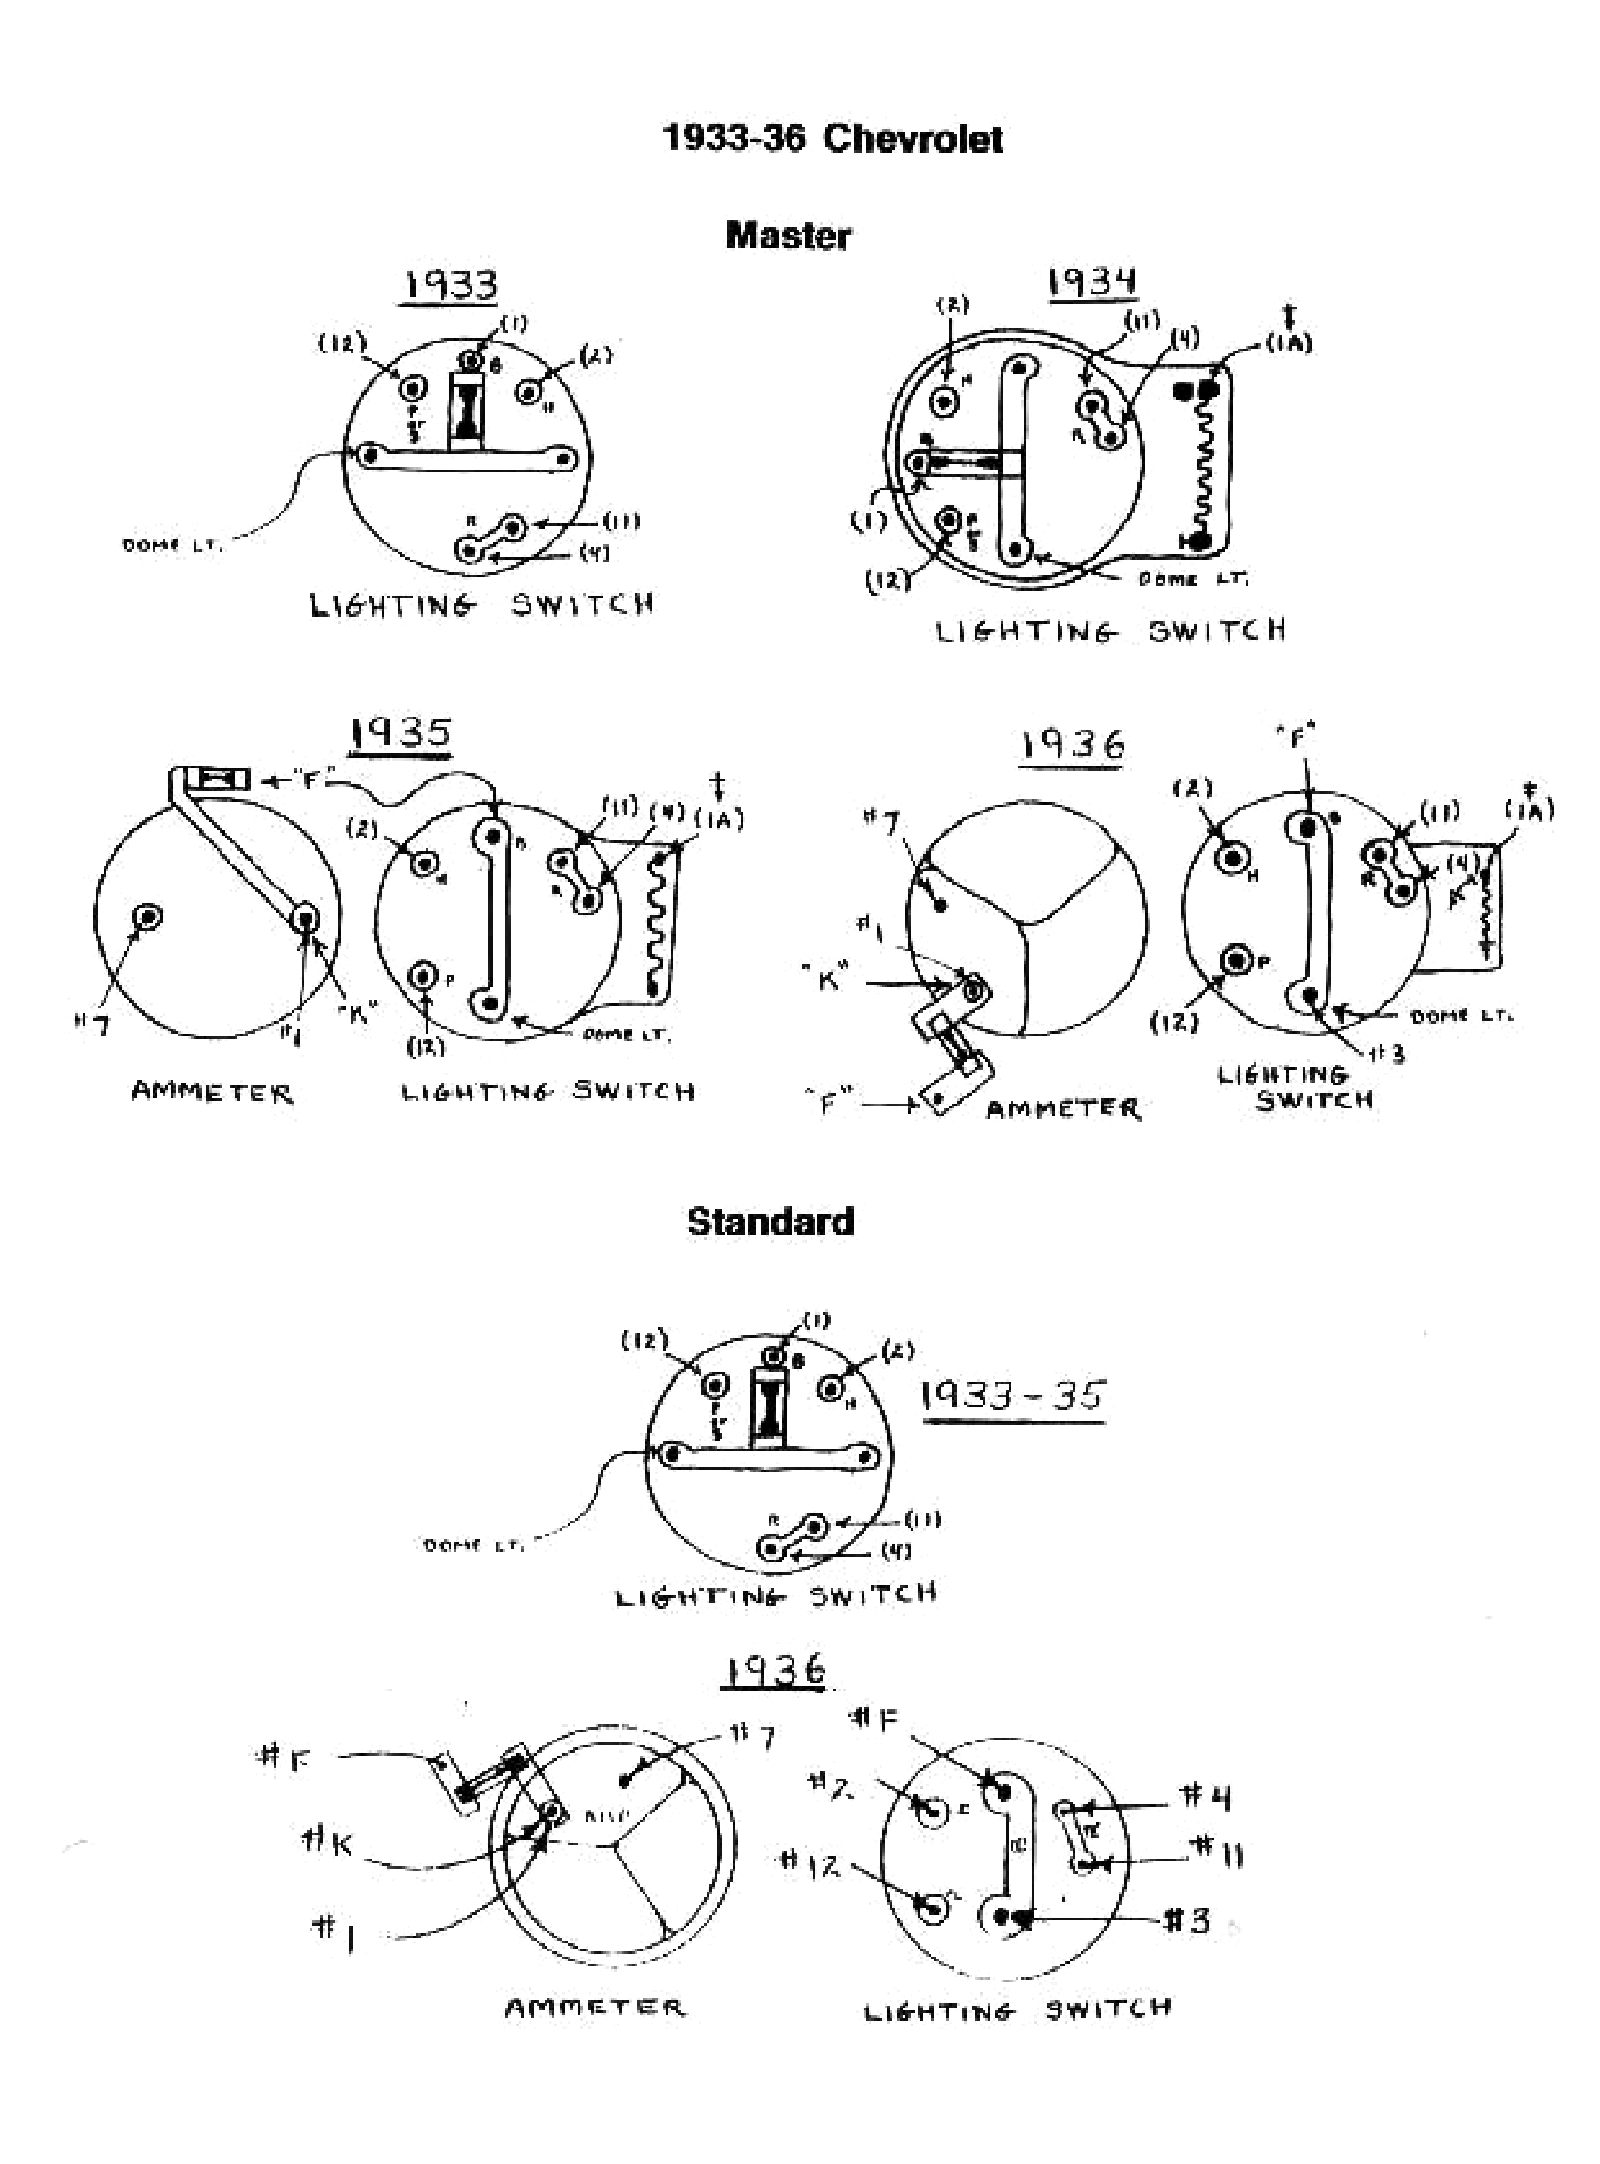 Chevy Wiring Diagrams Gm Starter Motor 1933 Switches